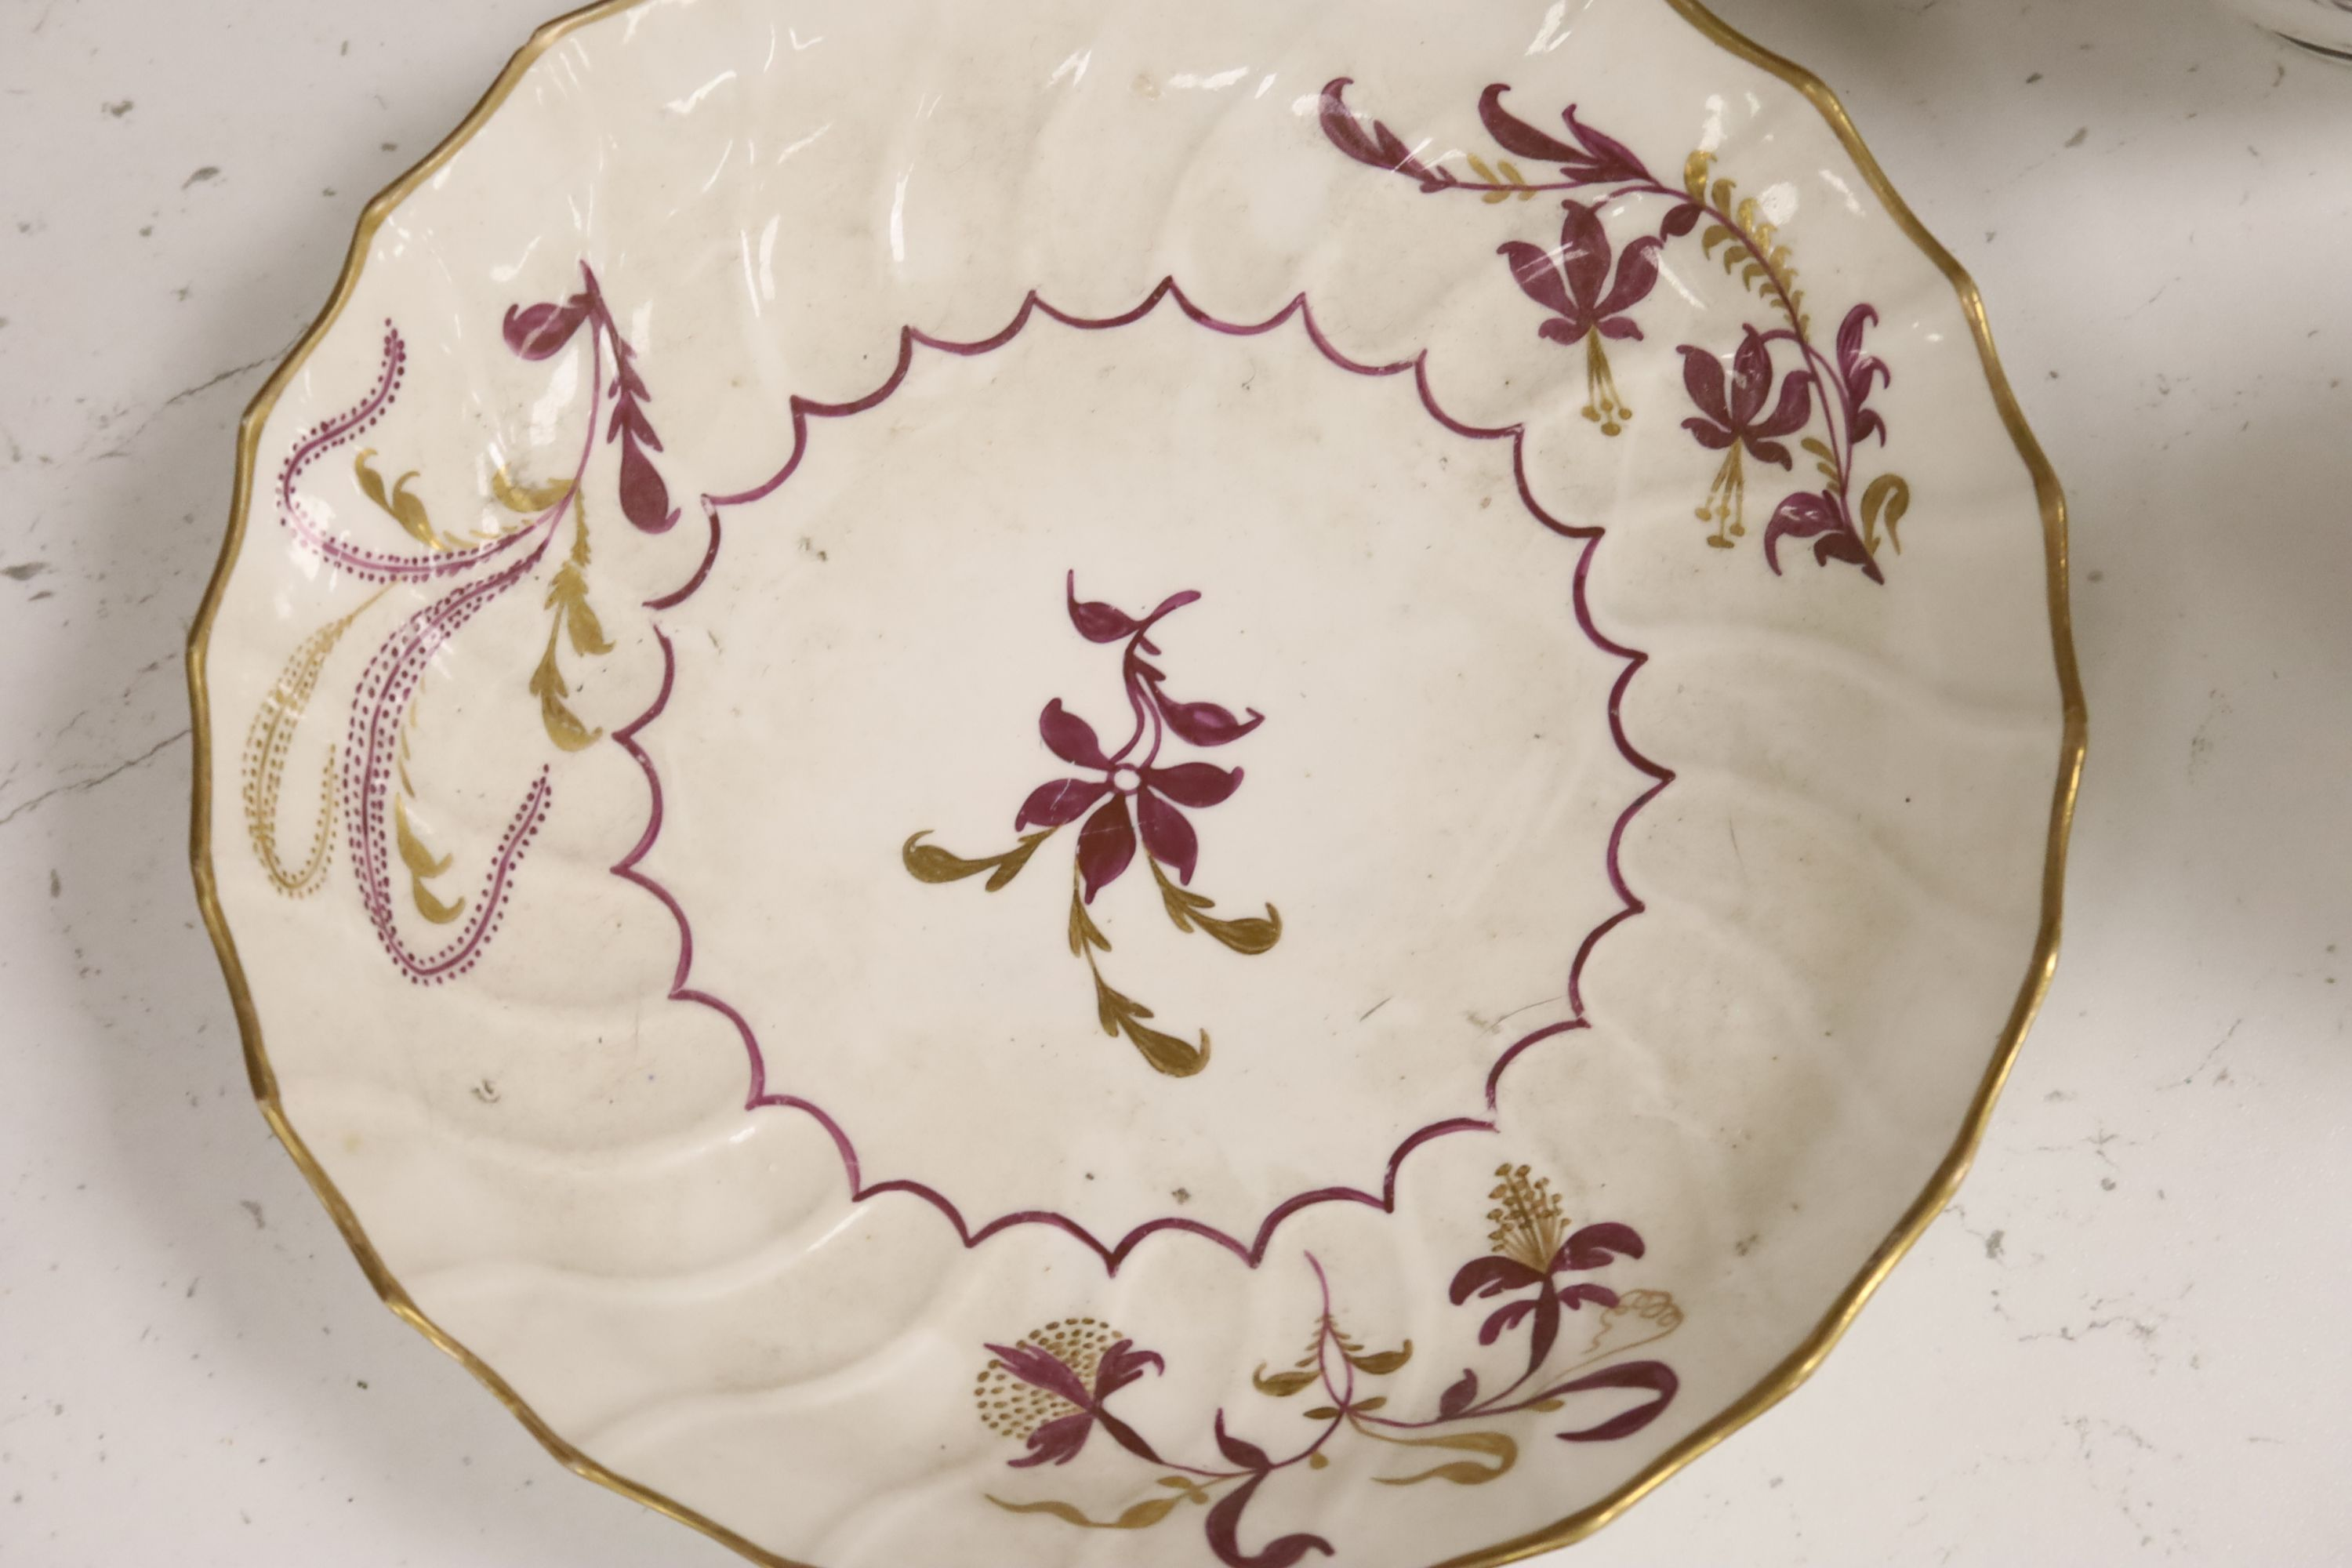 A group of late 18th / early 19th century English porcelain teaware and plates,together with a - Image 5 of 6